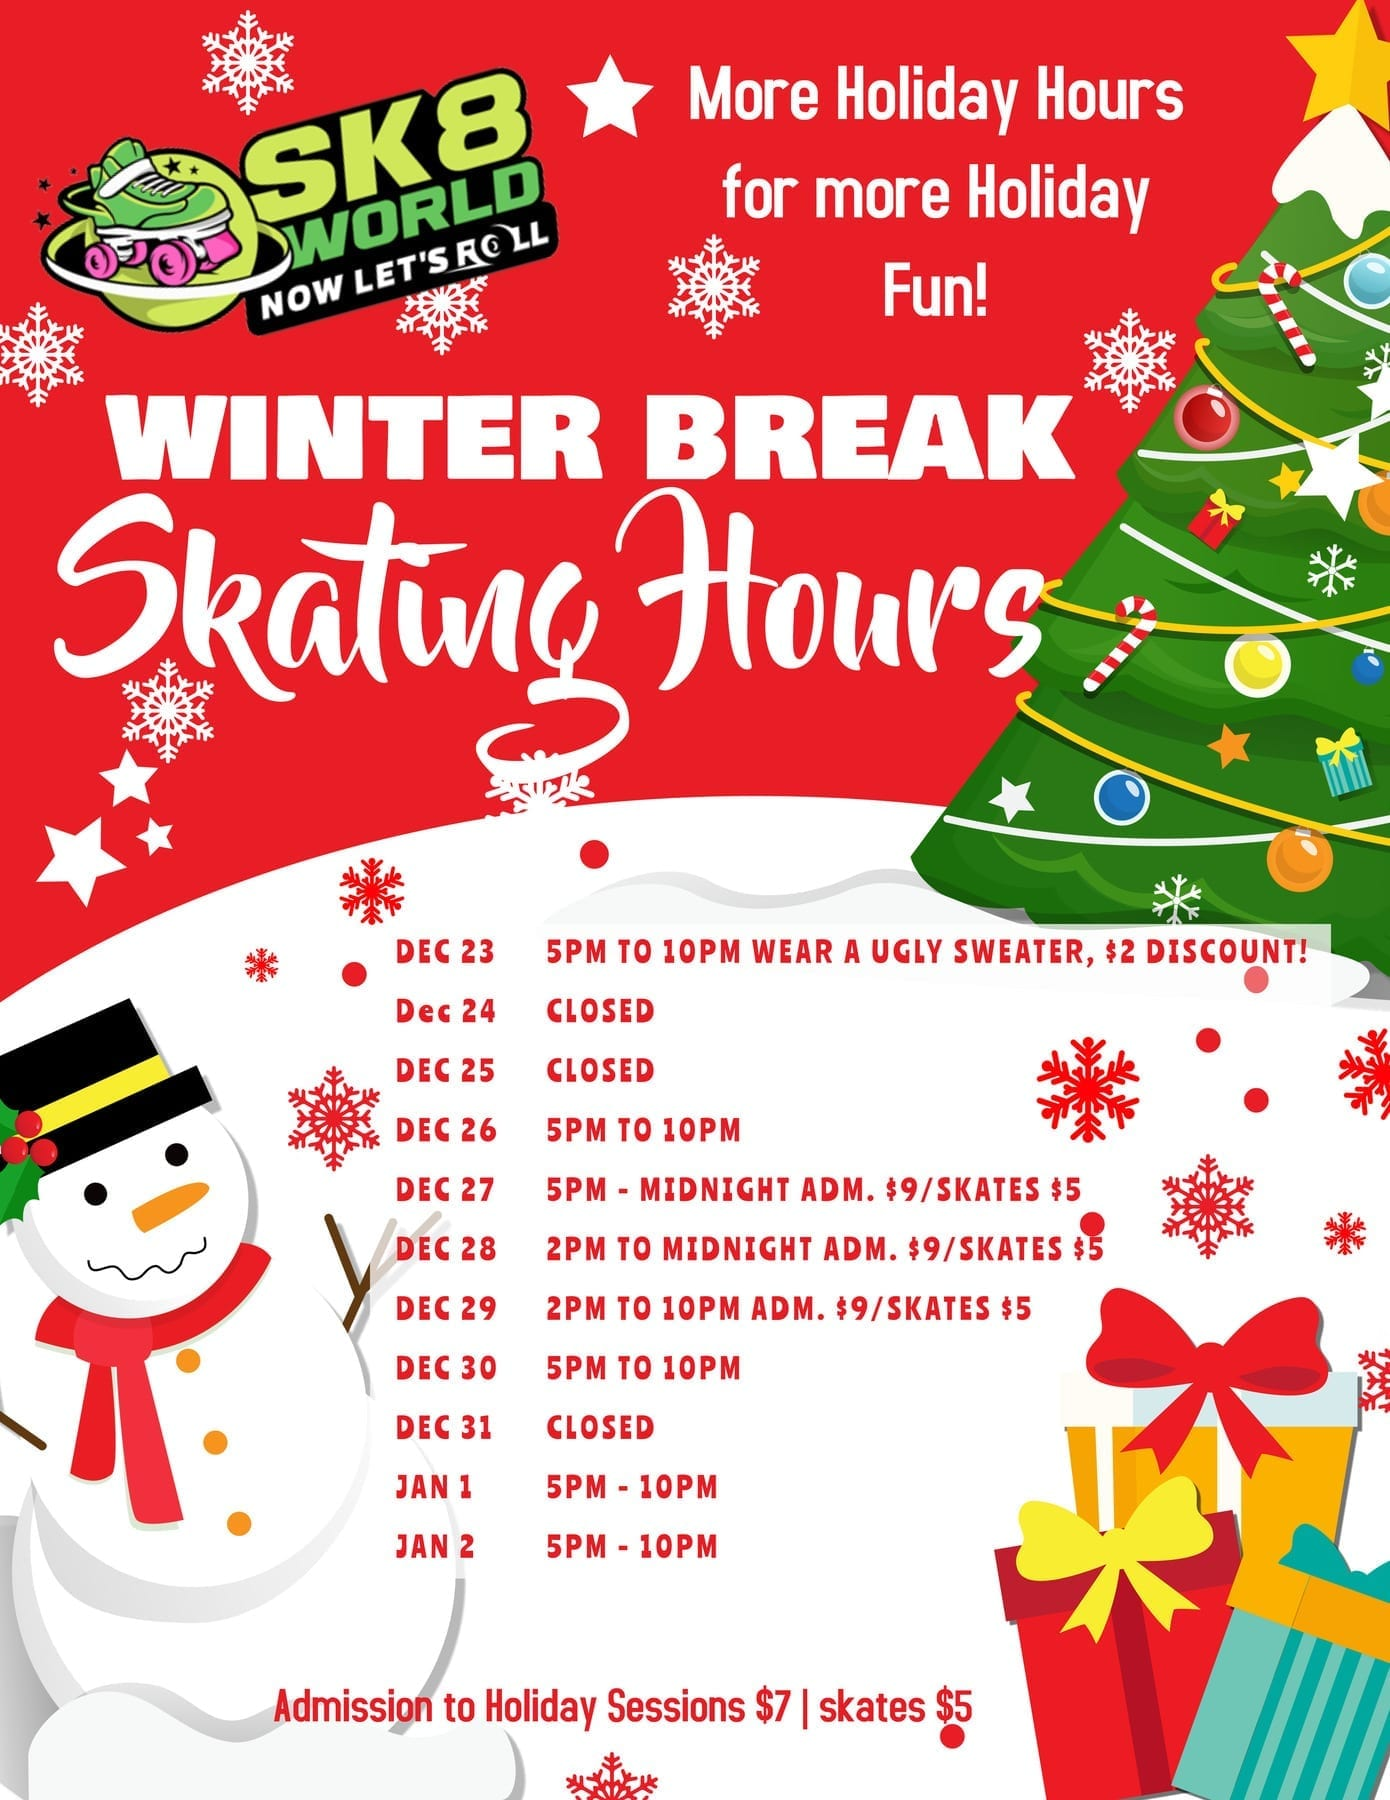 Winter Break Skate Hours flyer with snowman and christmas tree